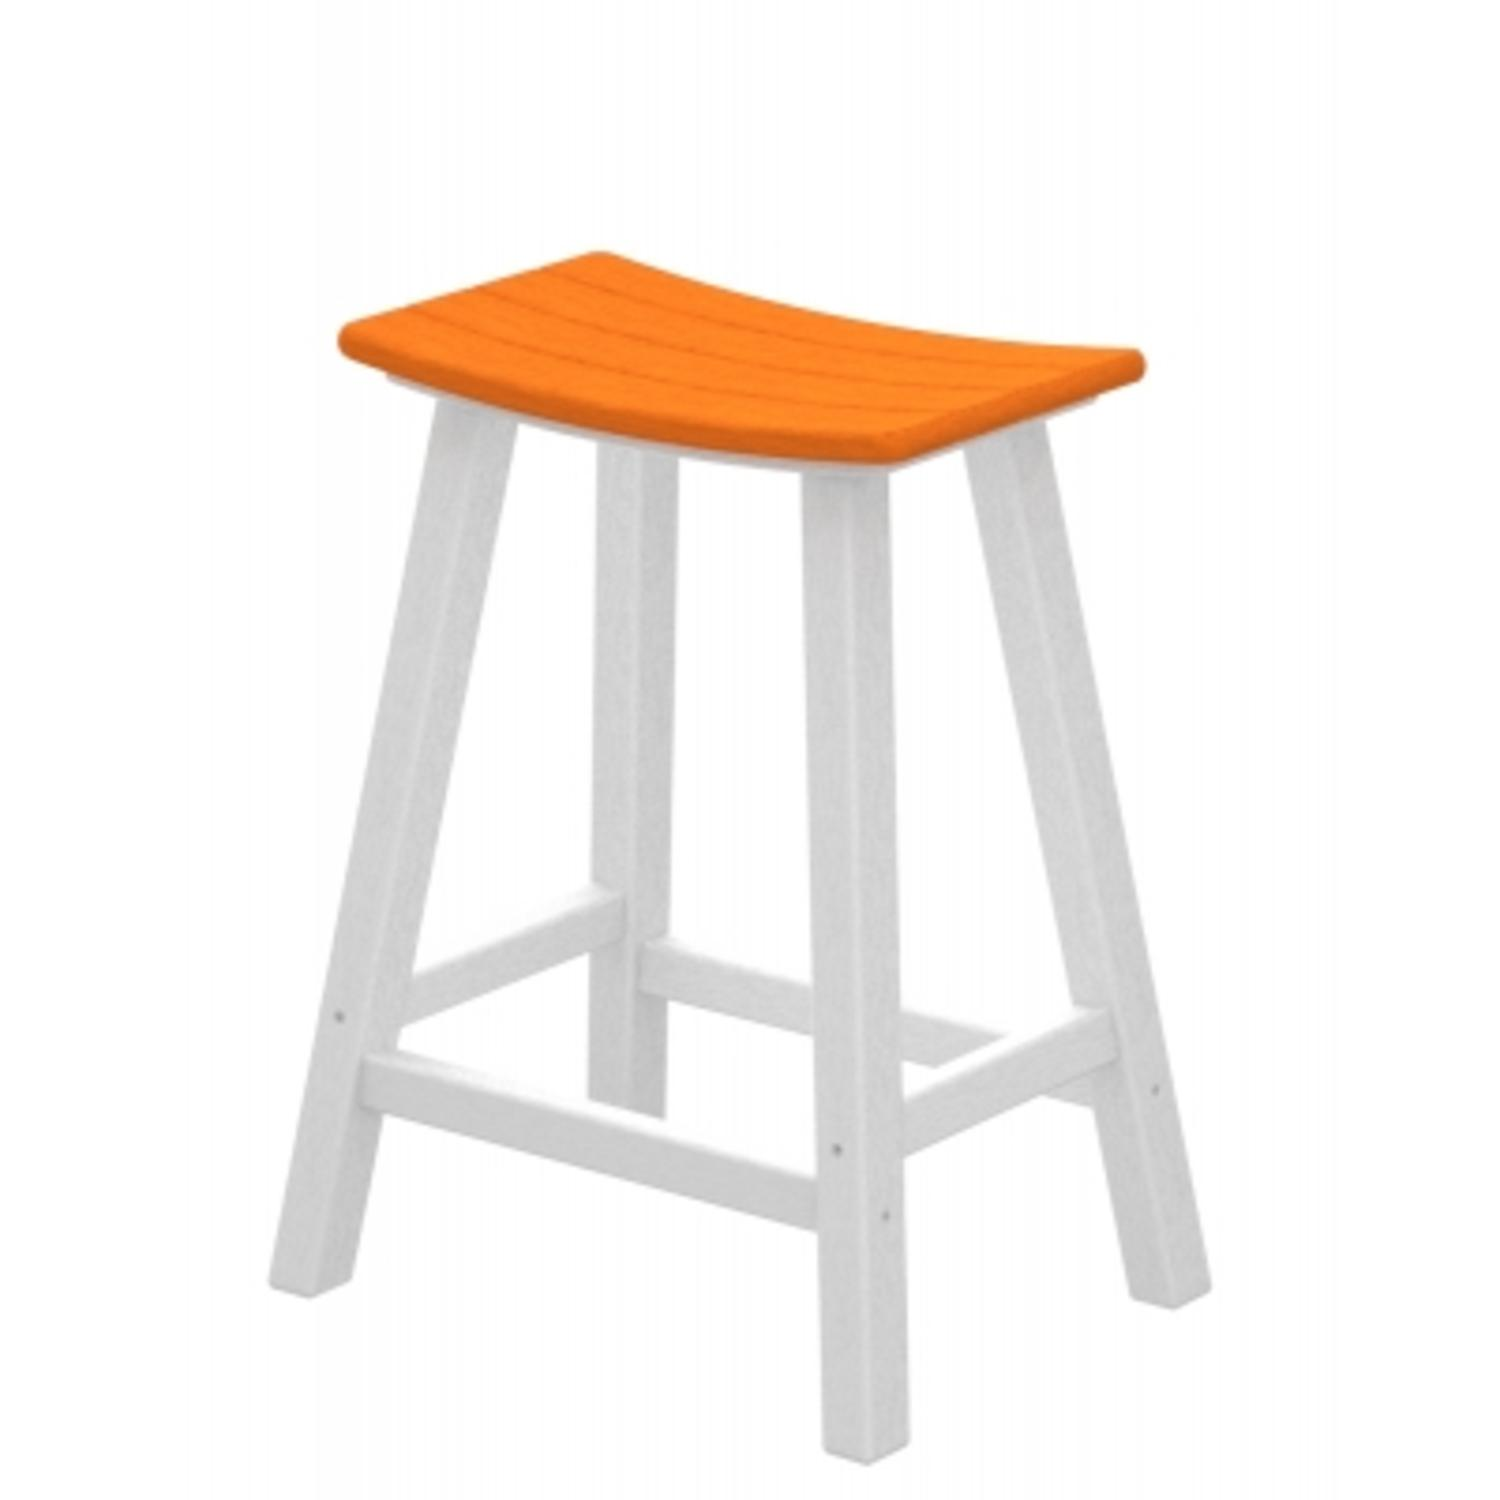 """24.75"""" Recycled Earth-Friendly Curved Outdoor Bar Stool - Tangerine White Frame"""